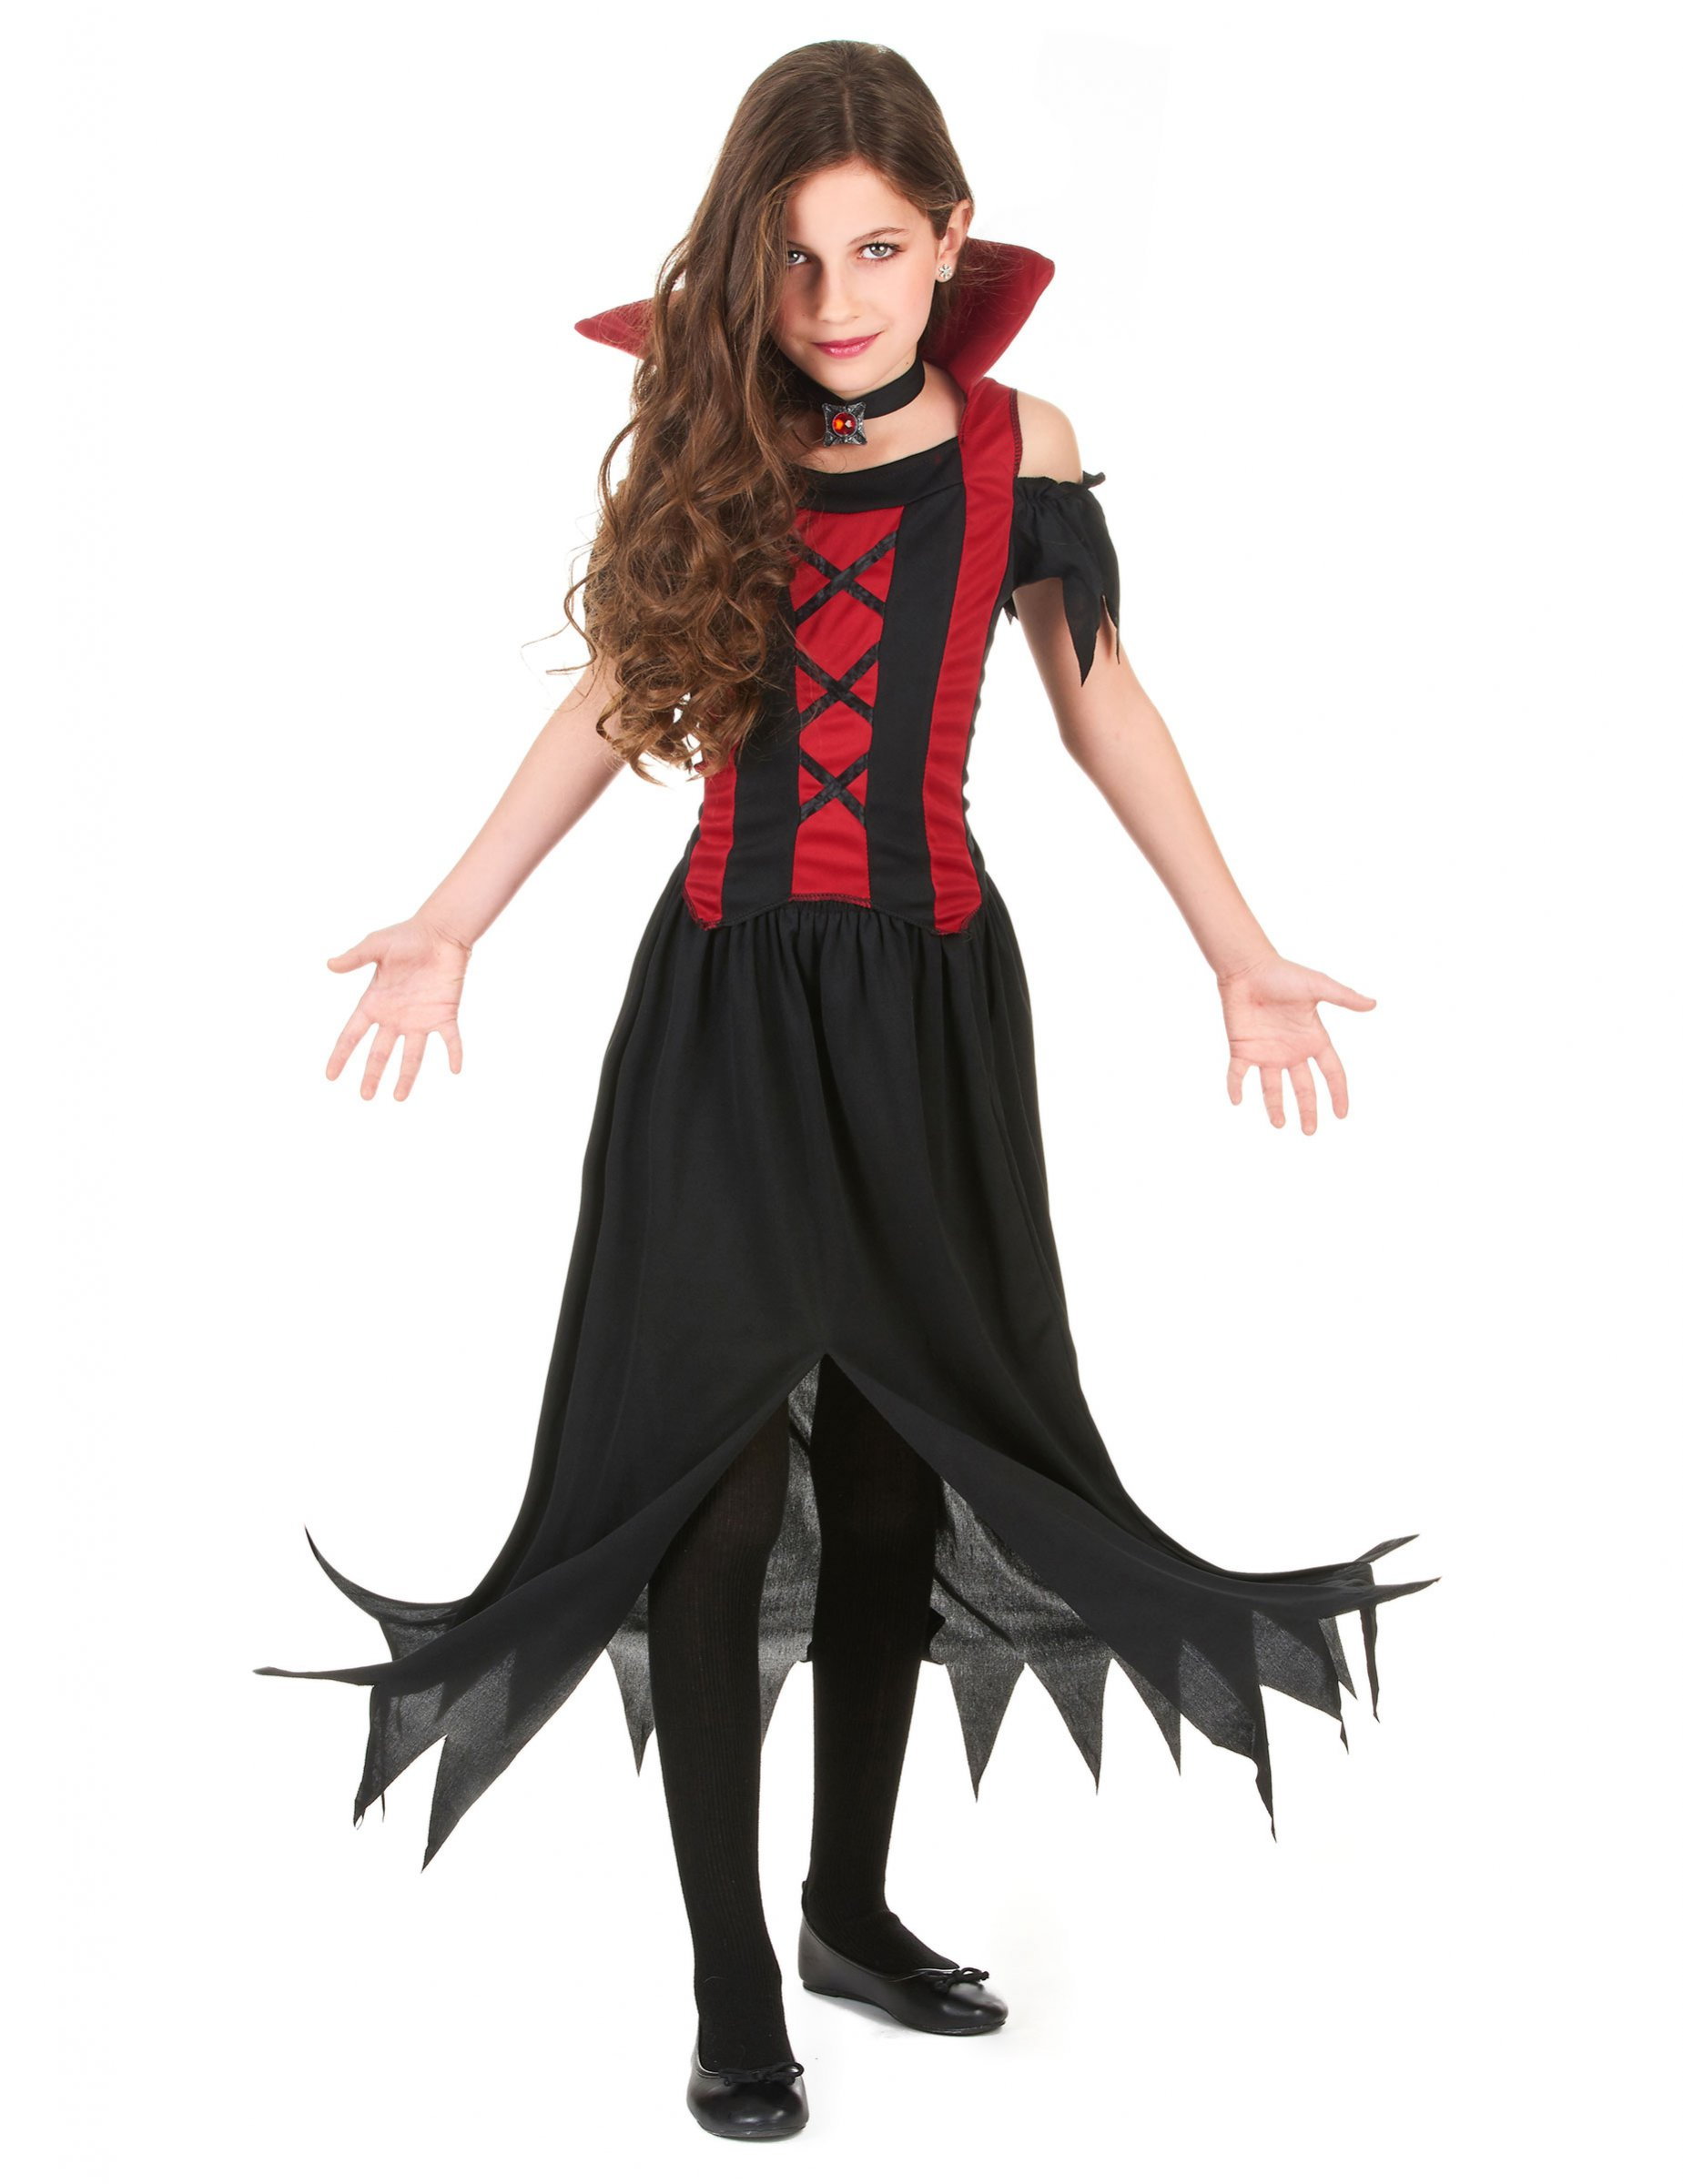 d guisement vampire rouge fille halloween deguise toi achat de d guisements enfants. Black Bedroom Furniture Sets. Home Design Ideas